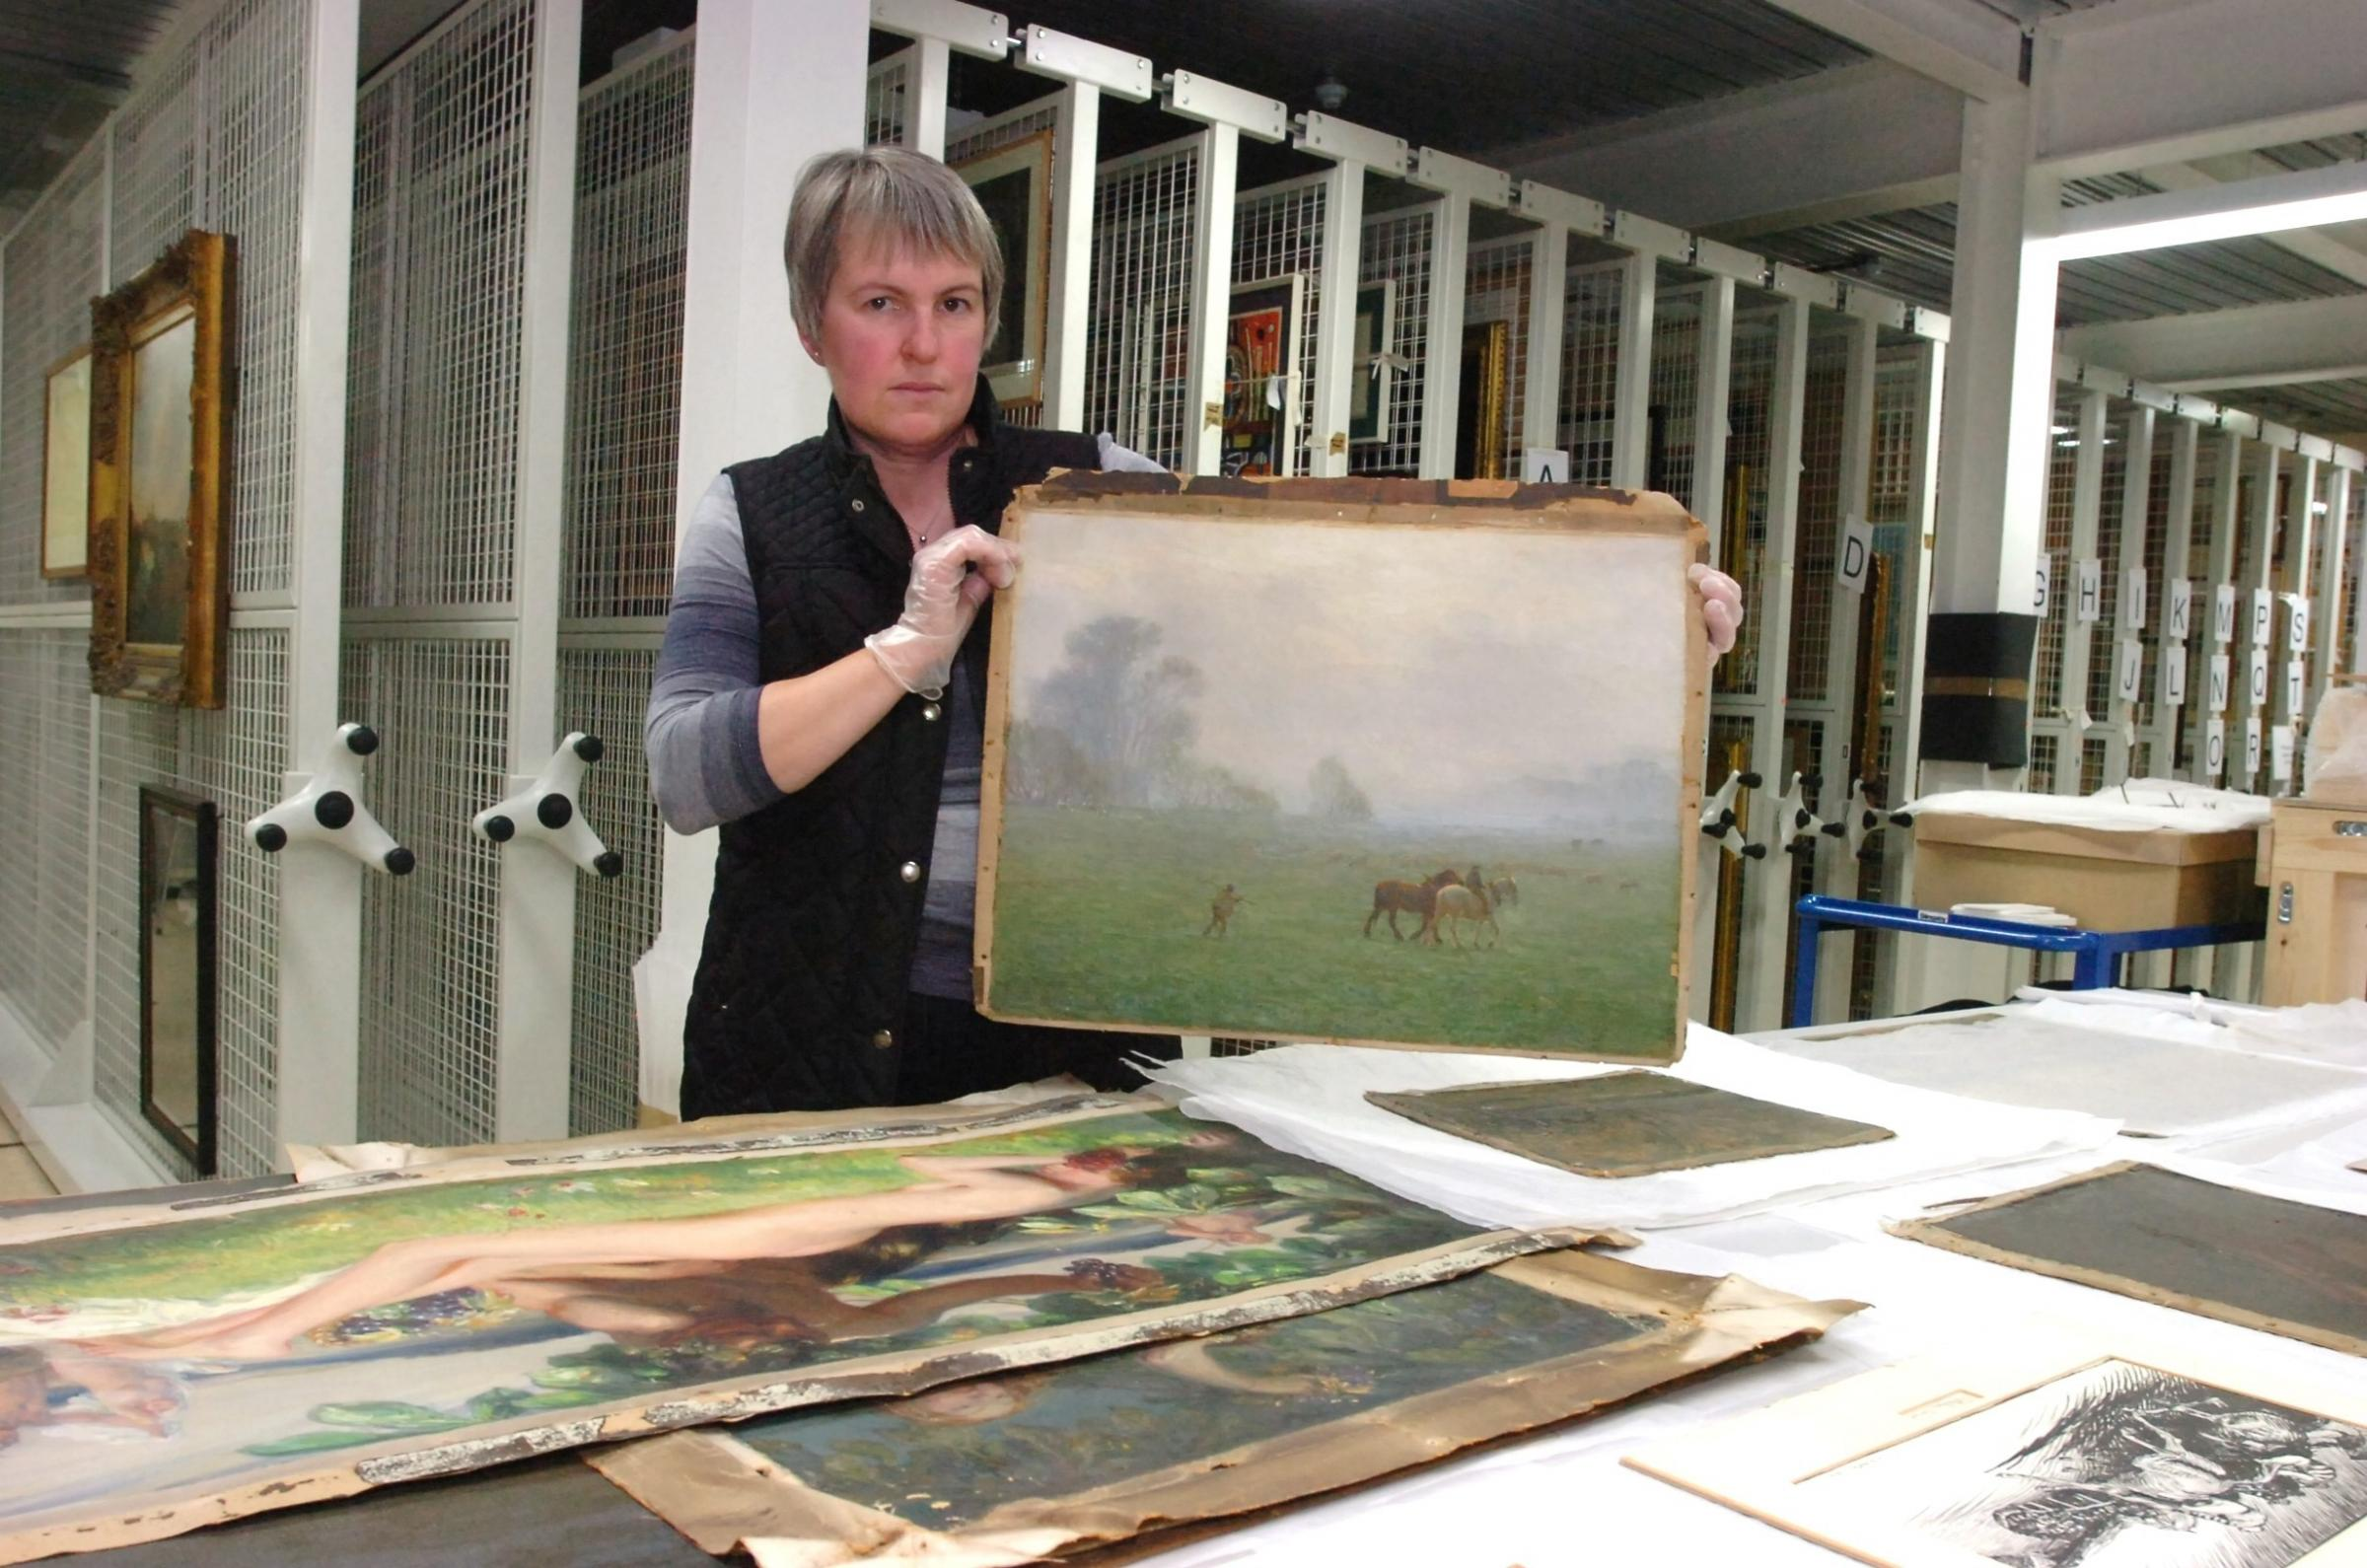 Curator Catherine Willson with some of the additions to the Brian Hatton collection in 2014. The collection of paintings was donated to Hereford's Museum Resource & Learning Centre on Friars Street. The council holds more than 4,000 pieces of f